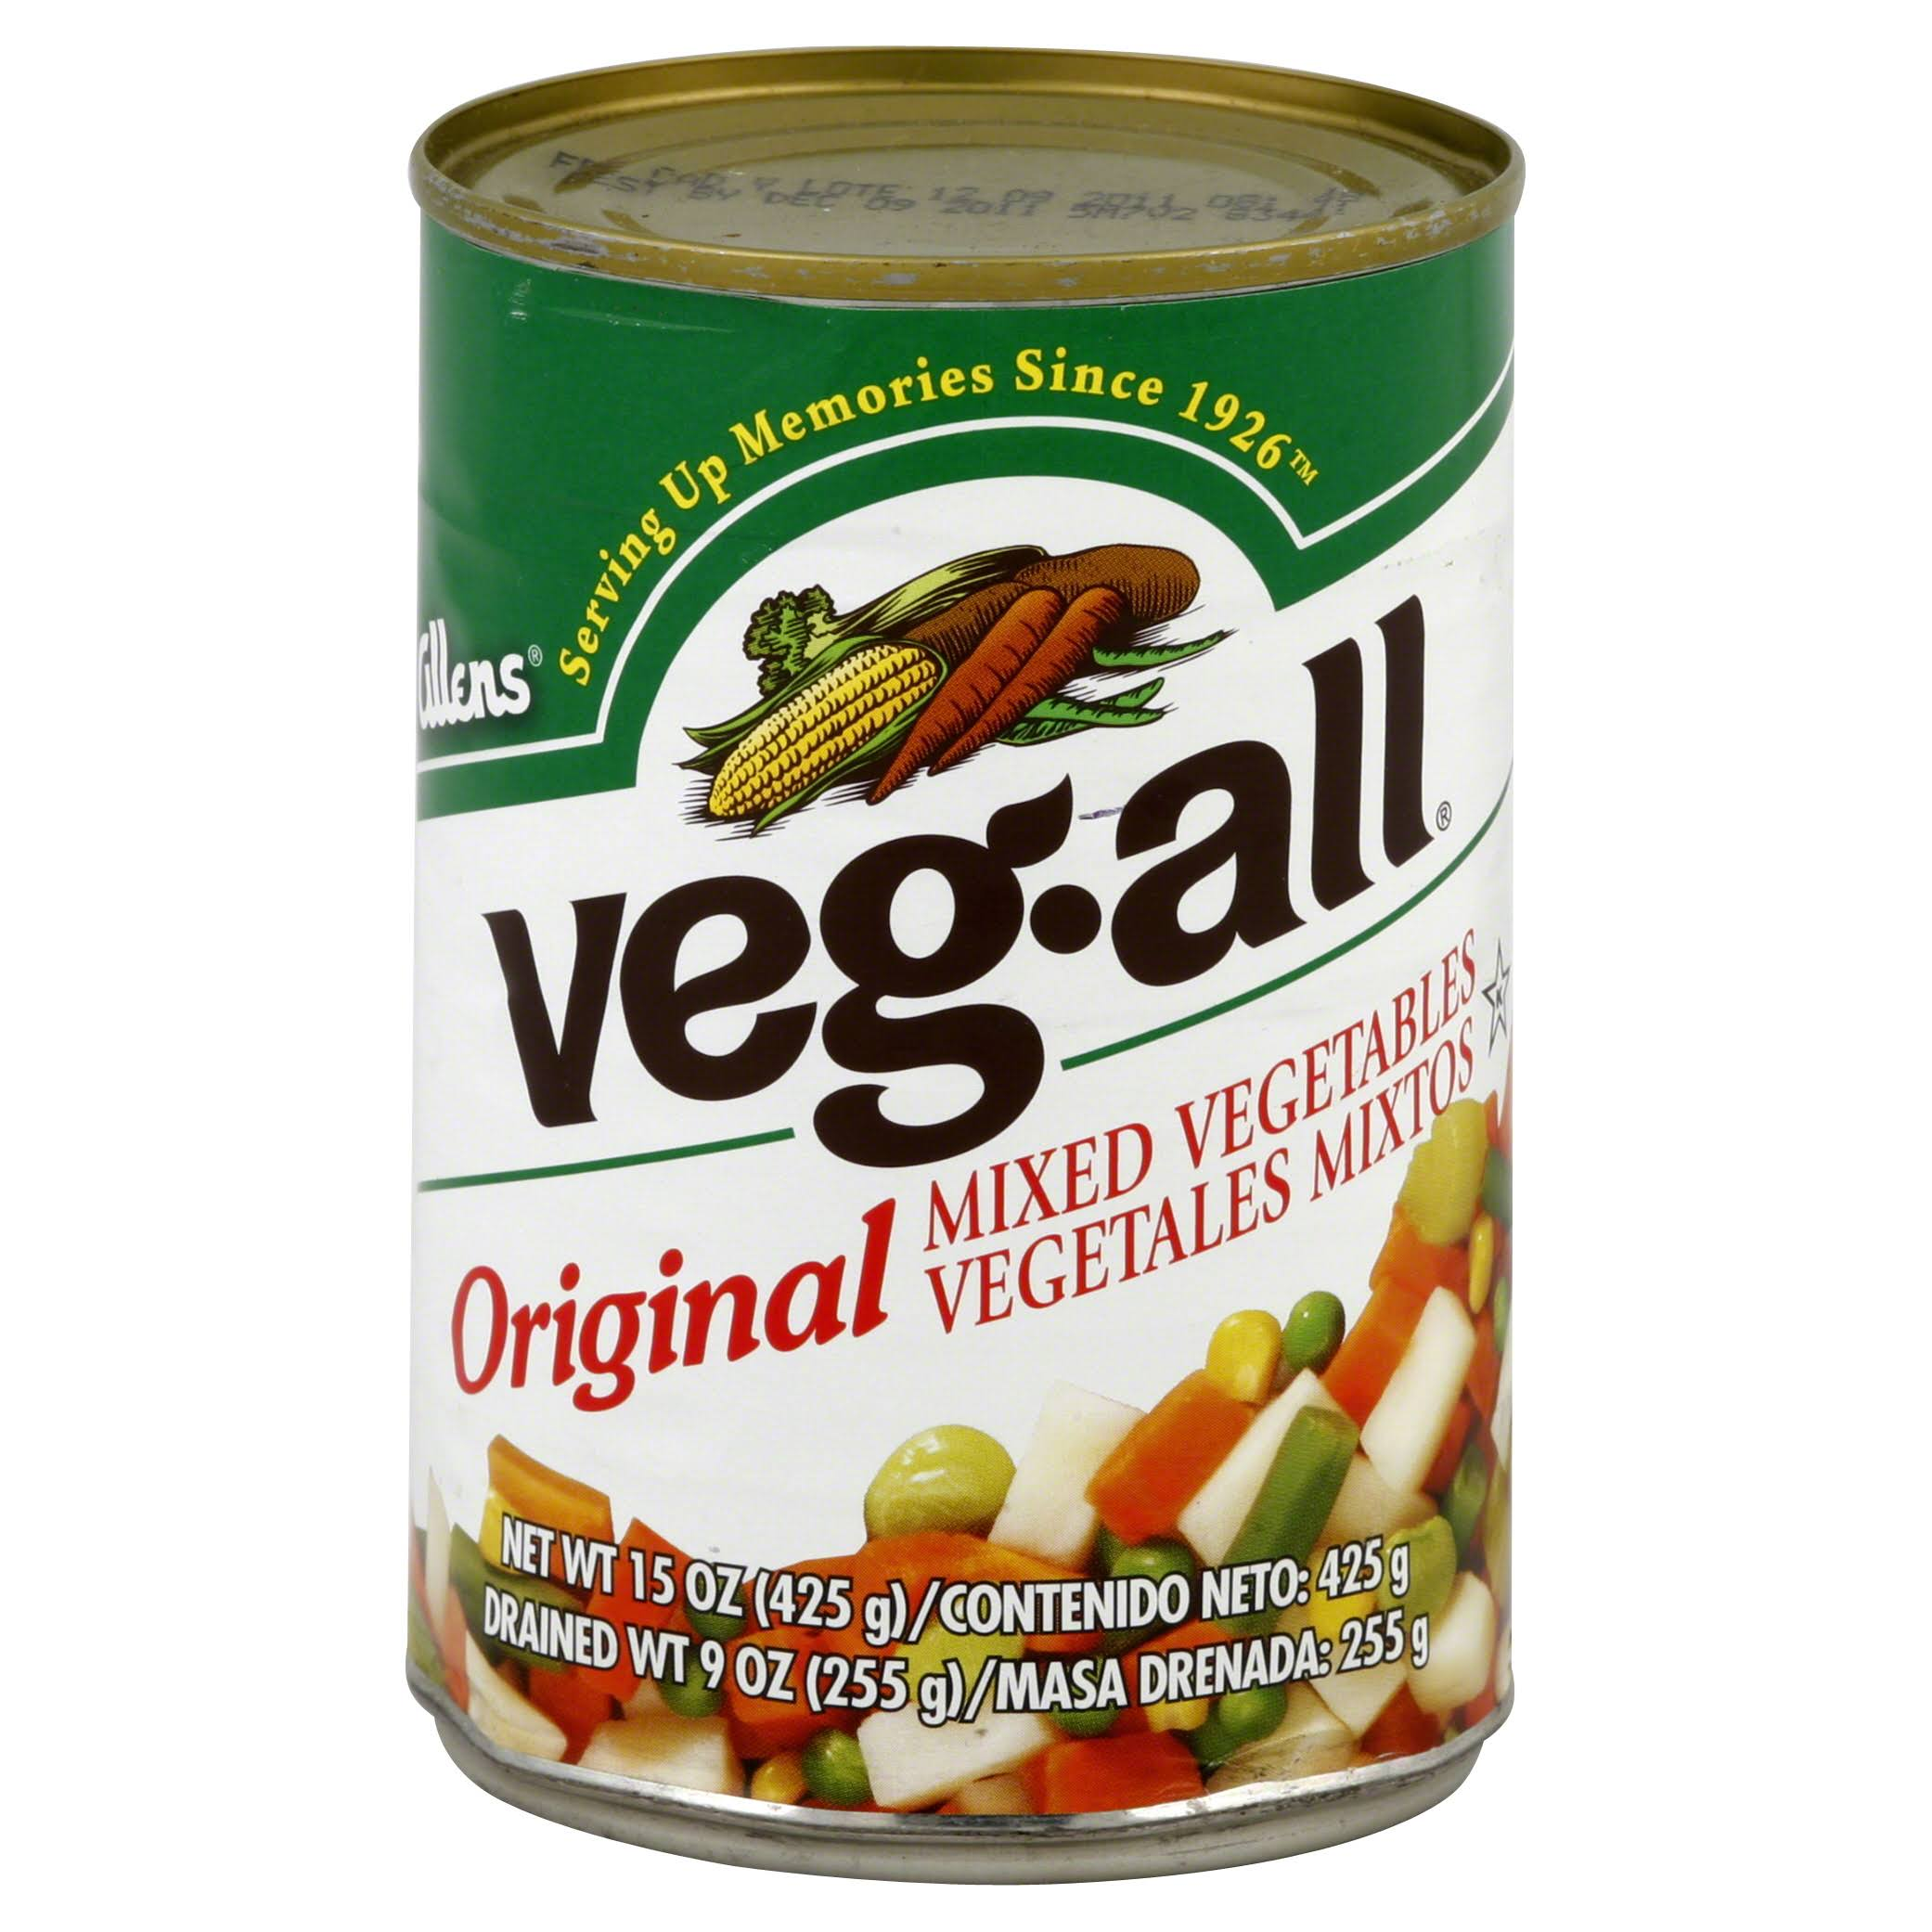 Veg All Original Mixed Vegetables - 15oz